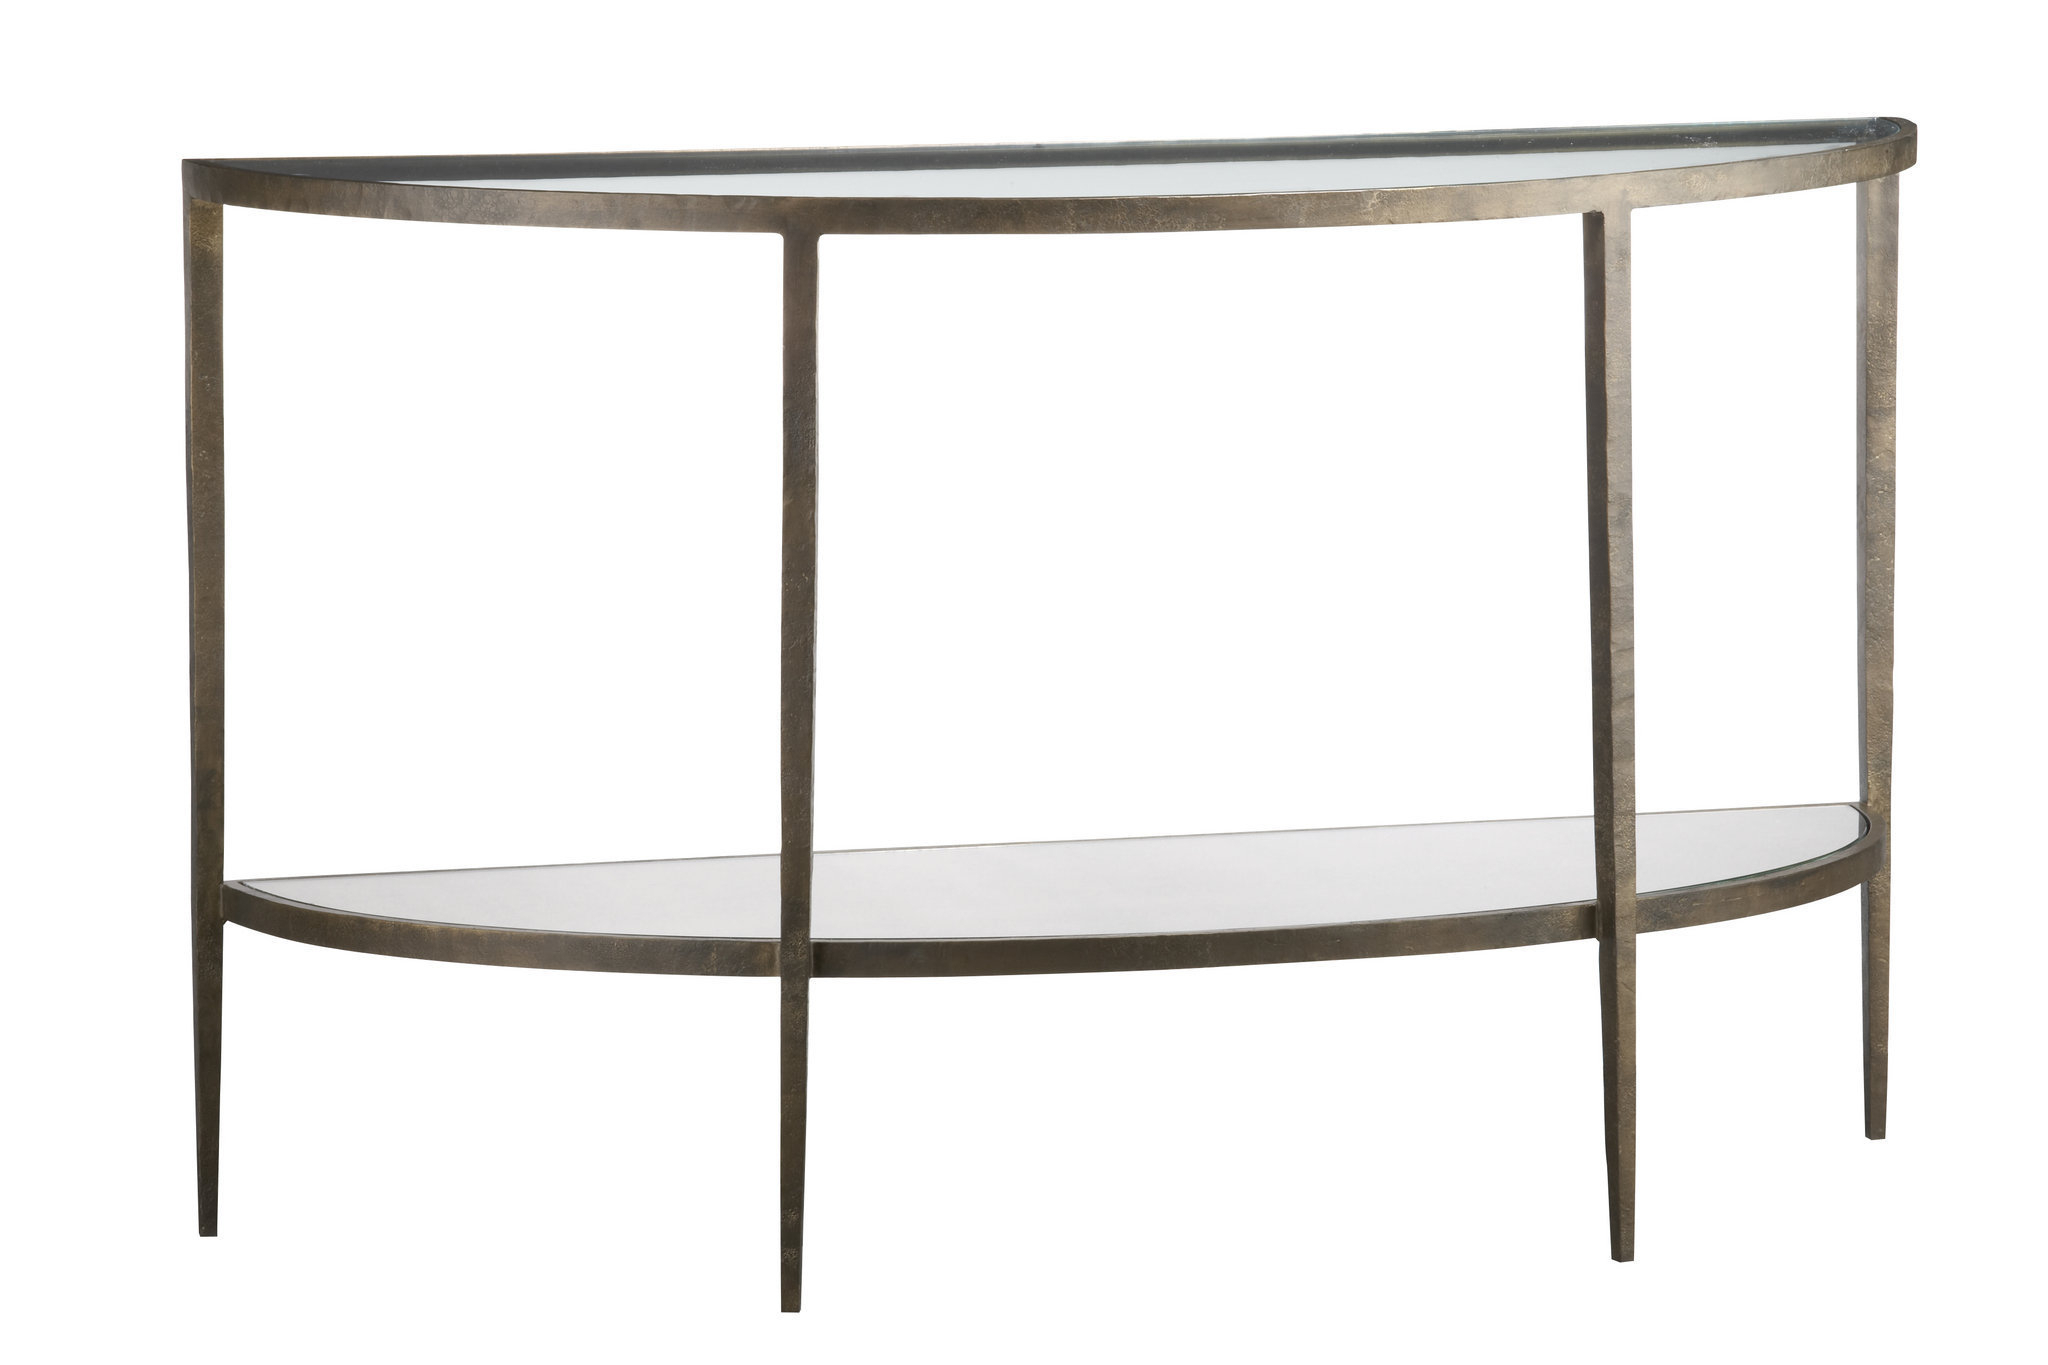 Three Demilune Tables, Three Prices | Oregonlive Pertaining To Clairemont Demilune Console Tables (View 26 of 30)